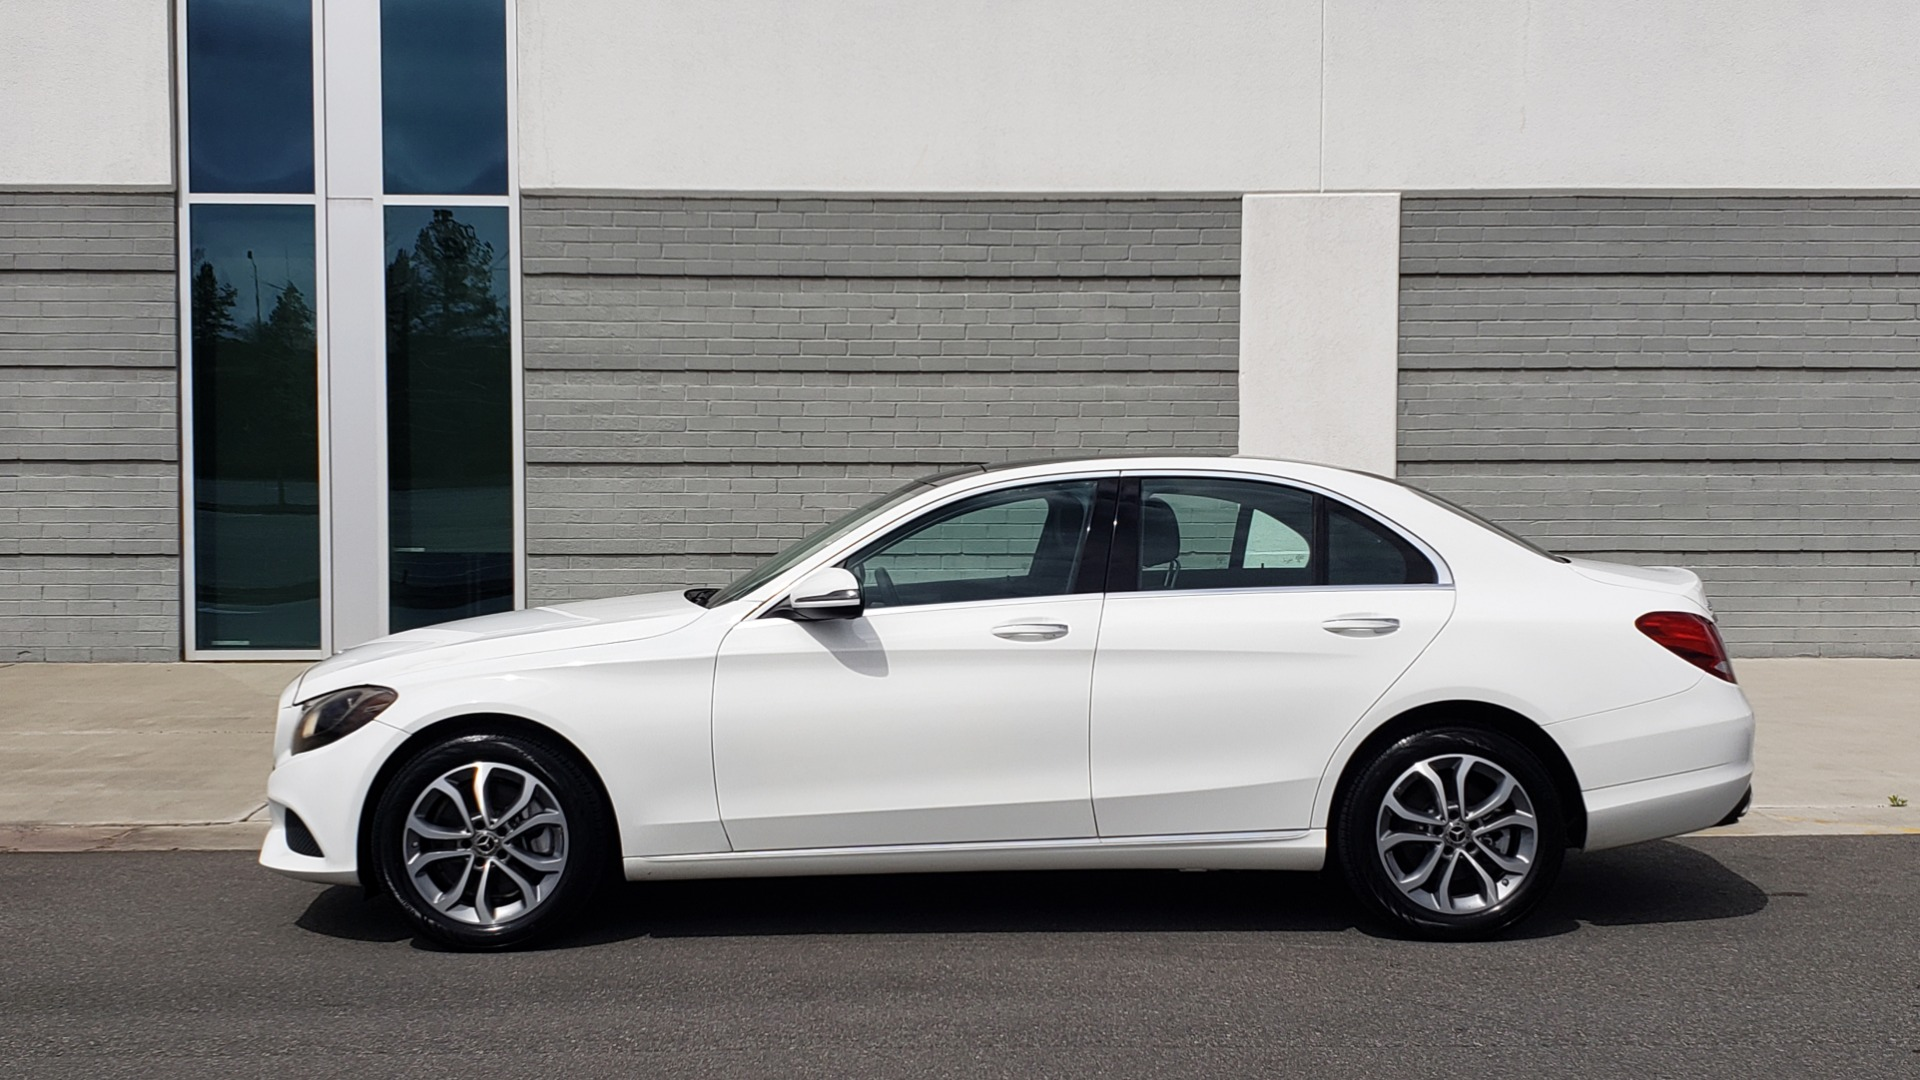 Used 2018 Mercedes-Benz C-CLASS C 300 4MATIC PREMIUM / HTD STS / PANO-ROOF / REARVIEW for sale Sold at Formula Imports in Charlotte NC 28227 3